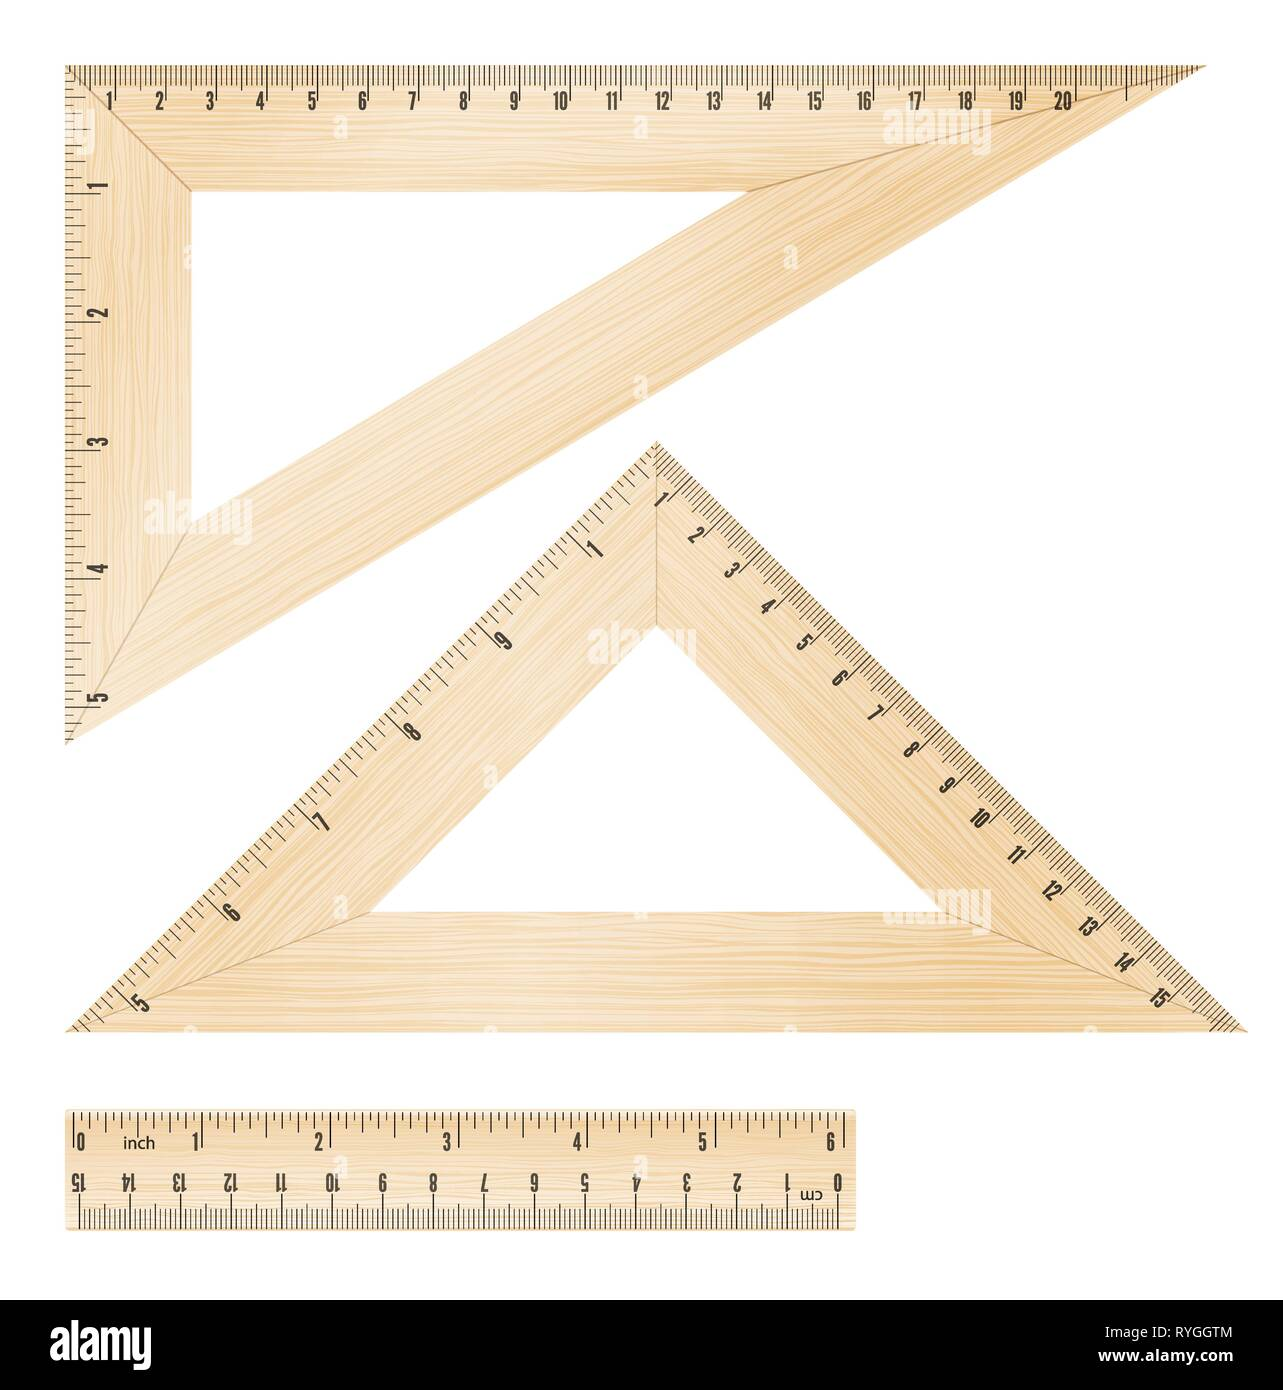 rulers and triangles - Stock Vector